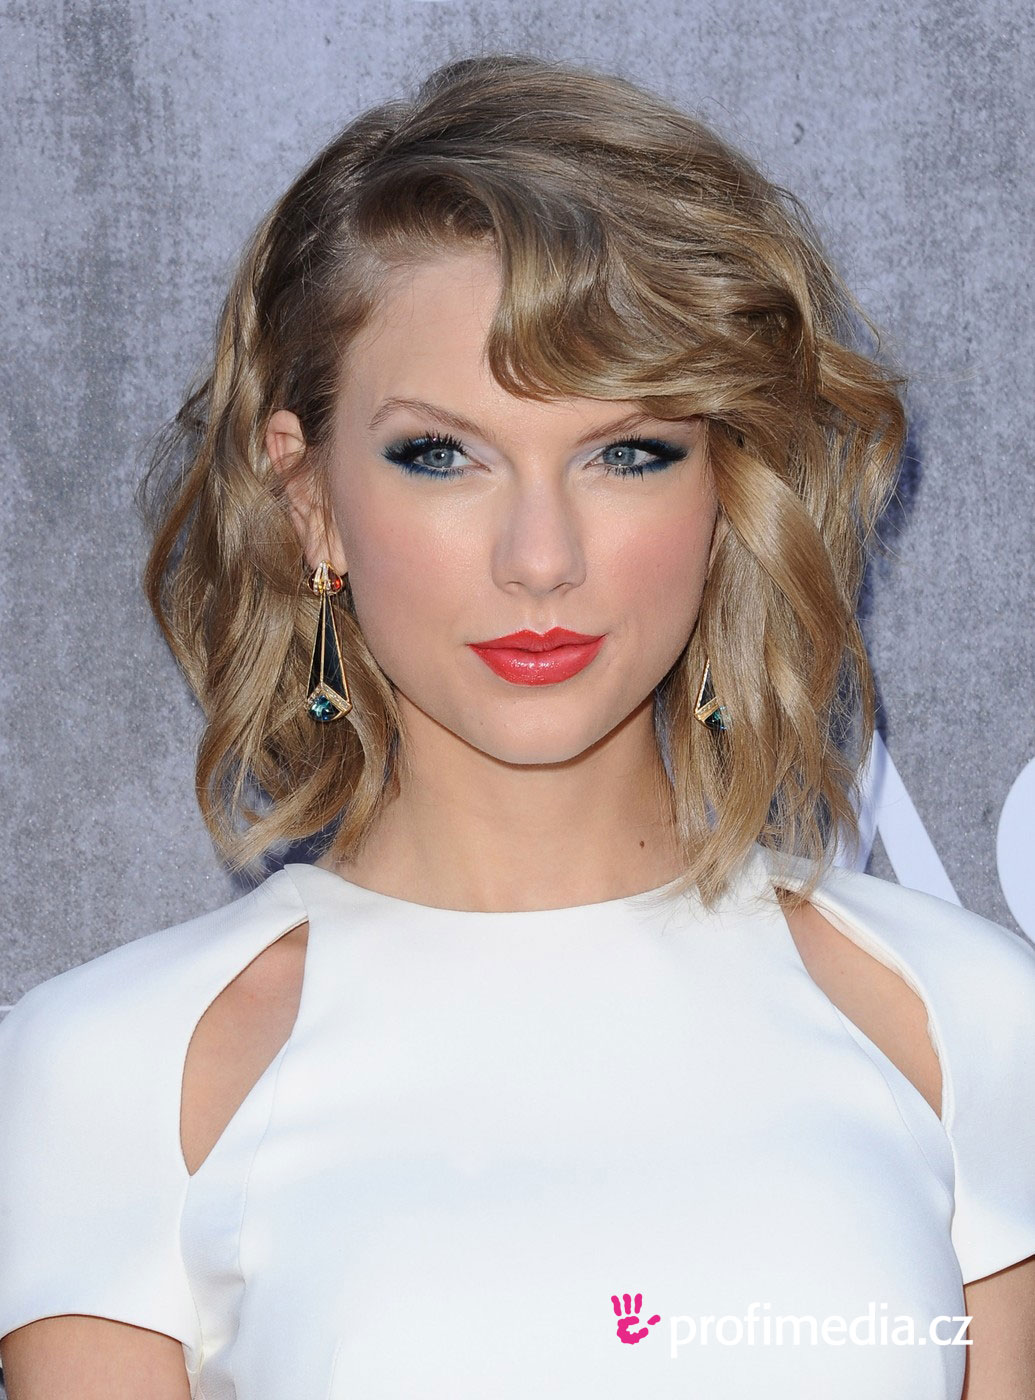 Taylor Swift hairstyle easyHairStyler